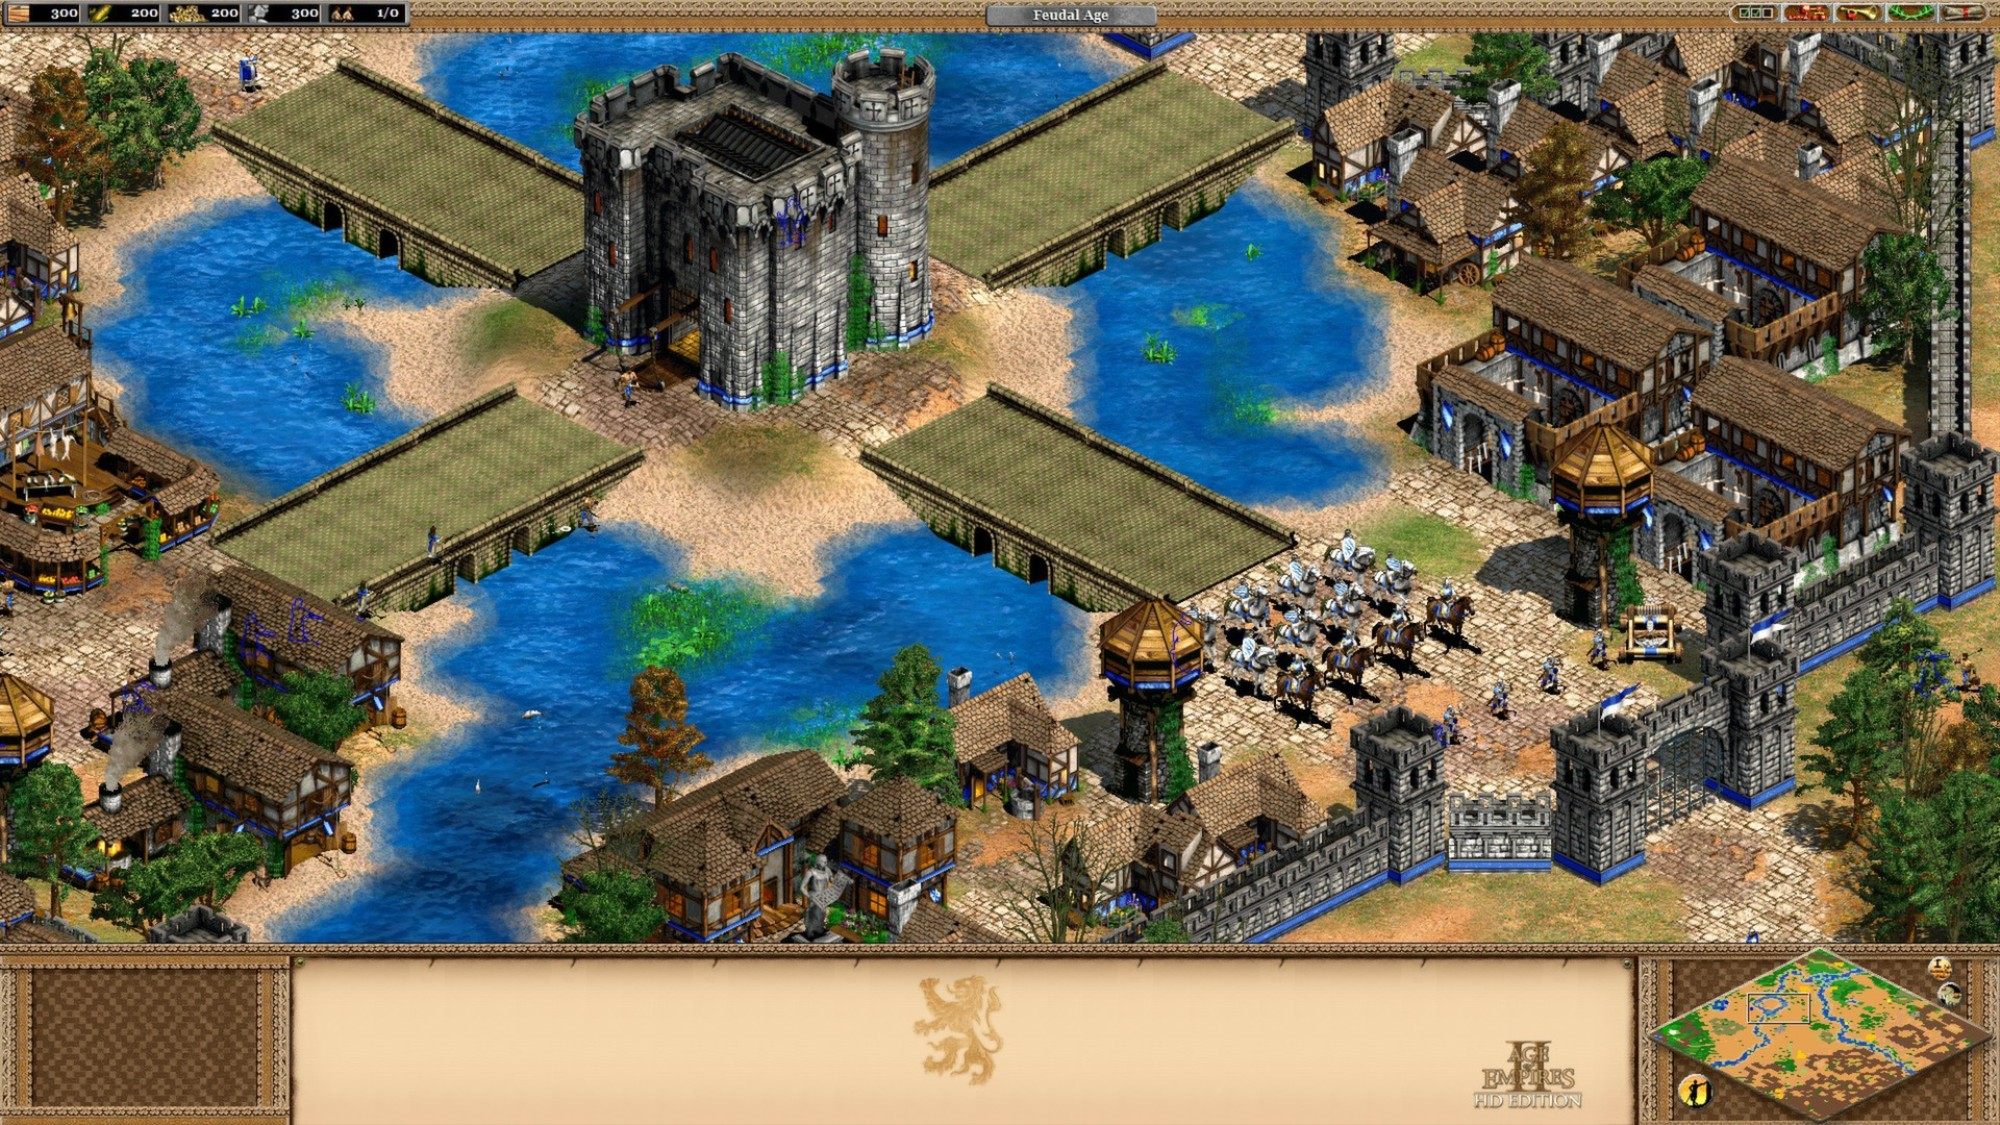 An Unsolved Game, 'Age of Empires II' Still Breeds Obsession 18